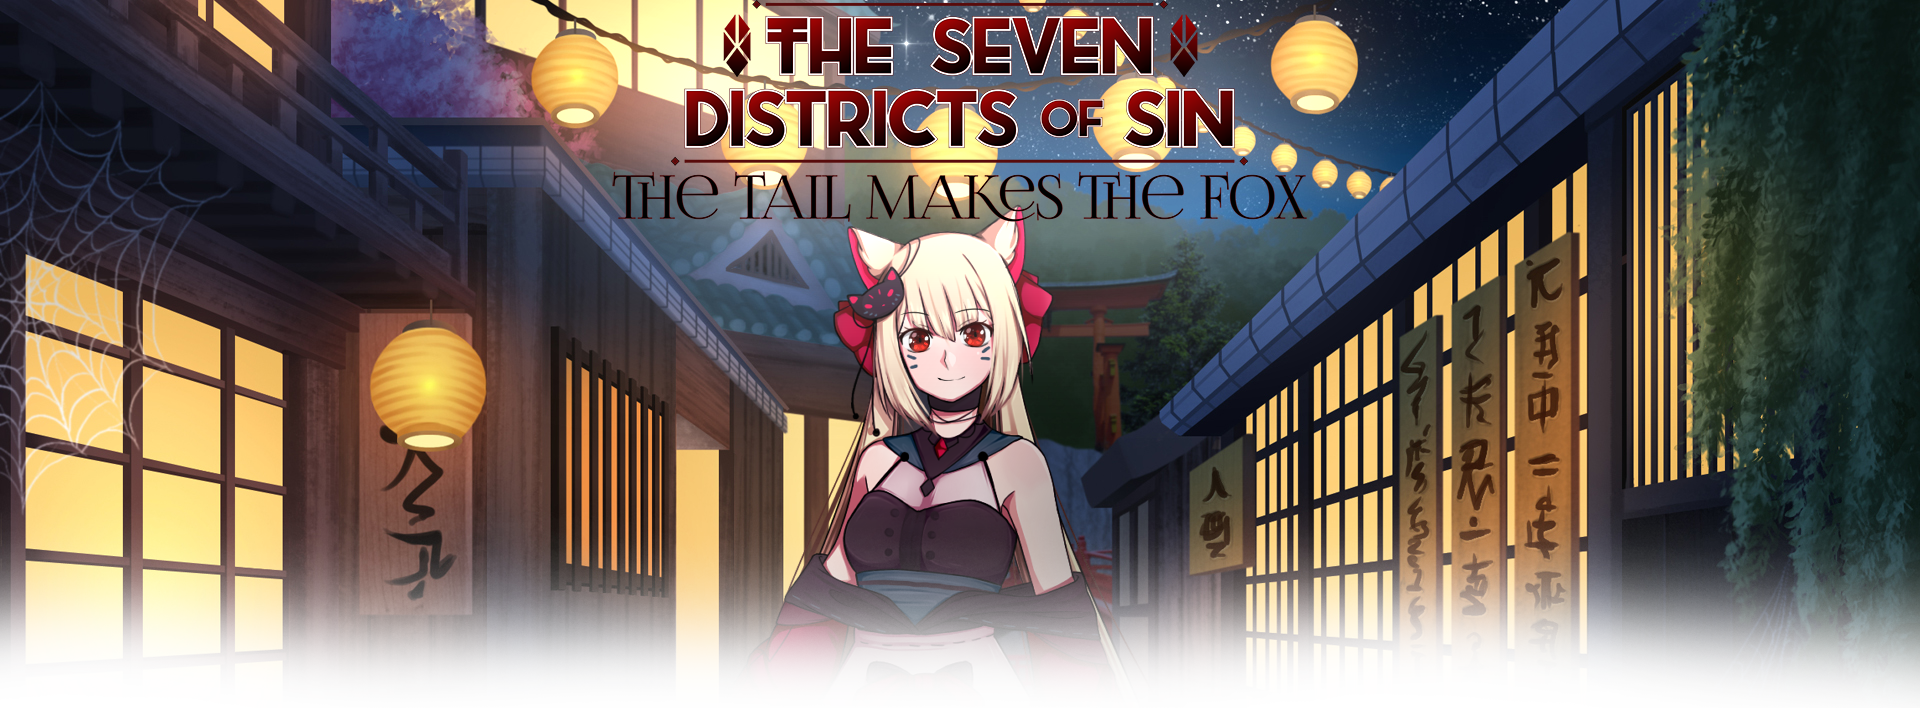 [EN/ESP] The Tail Makes the Fox - Episode 1